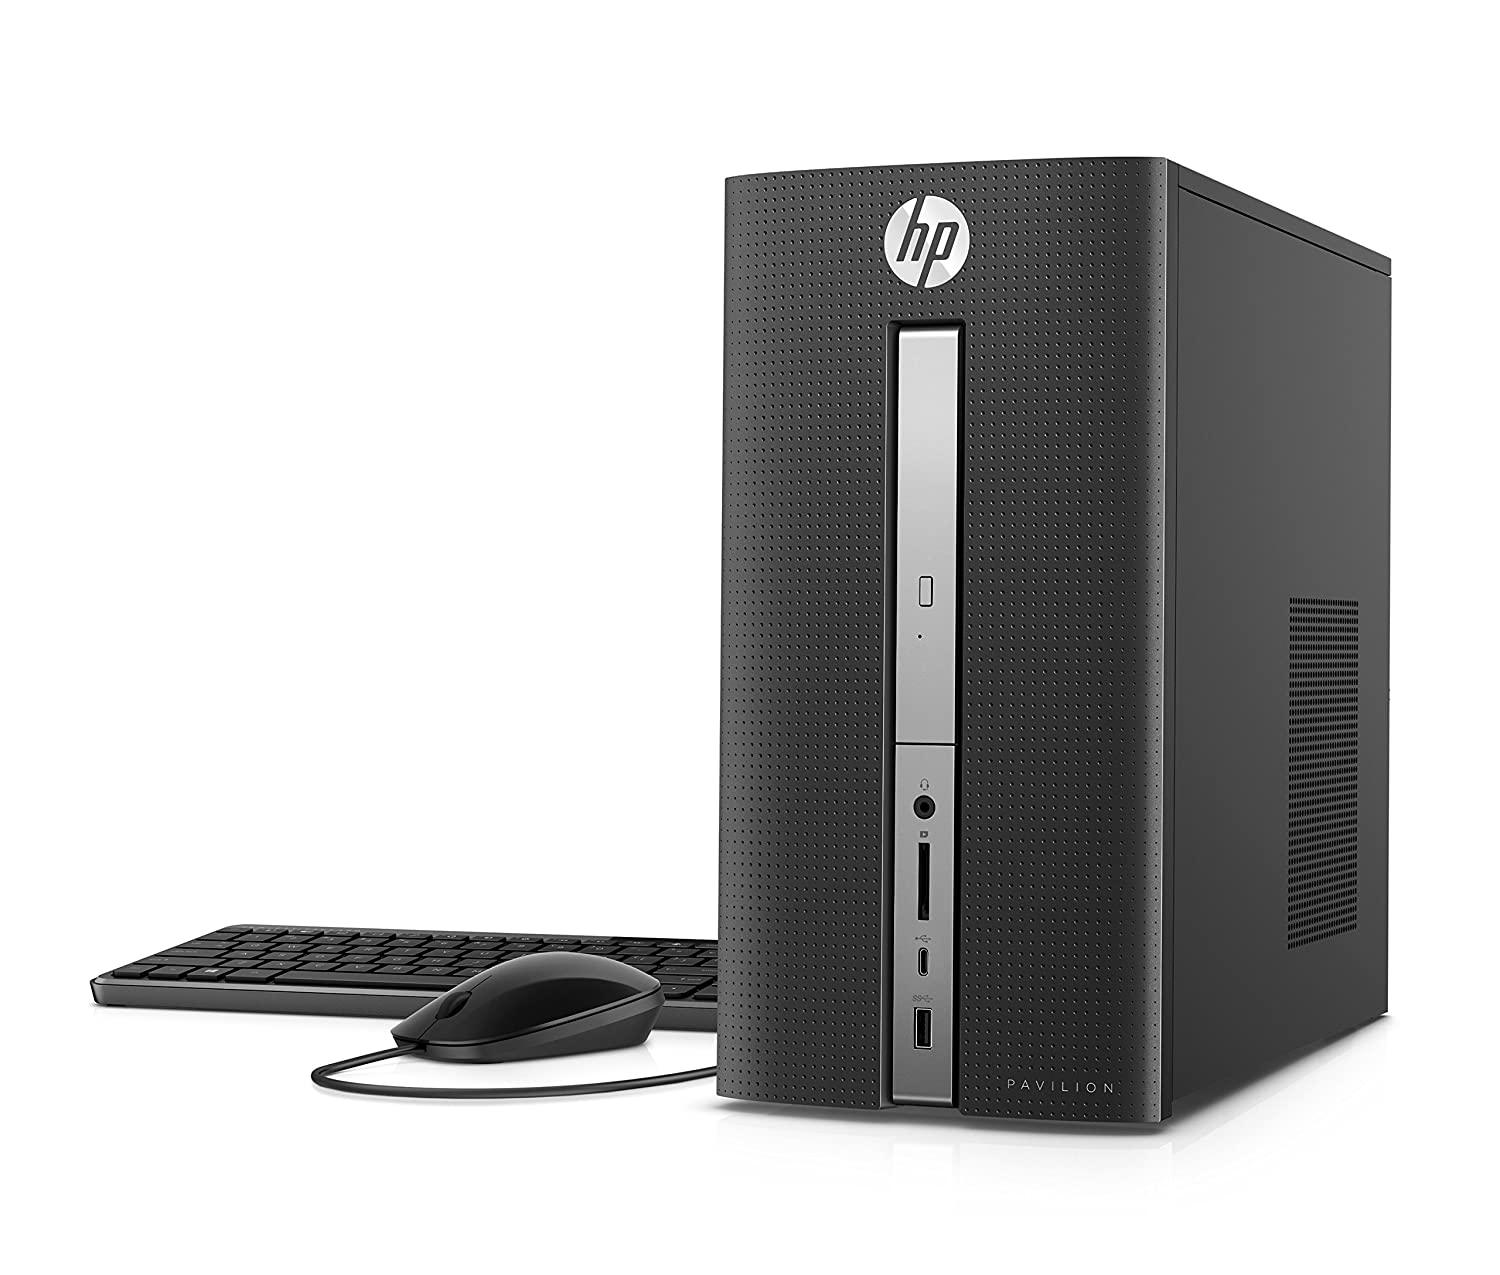 Hp Pavilion Desktop Computer Intel Core I7 7700 12gb Primary Personal Hardware Ram 1tb Hard Drive Windows 10 570 P030 Black Computers Accessories